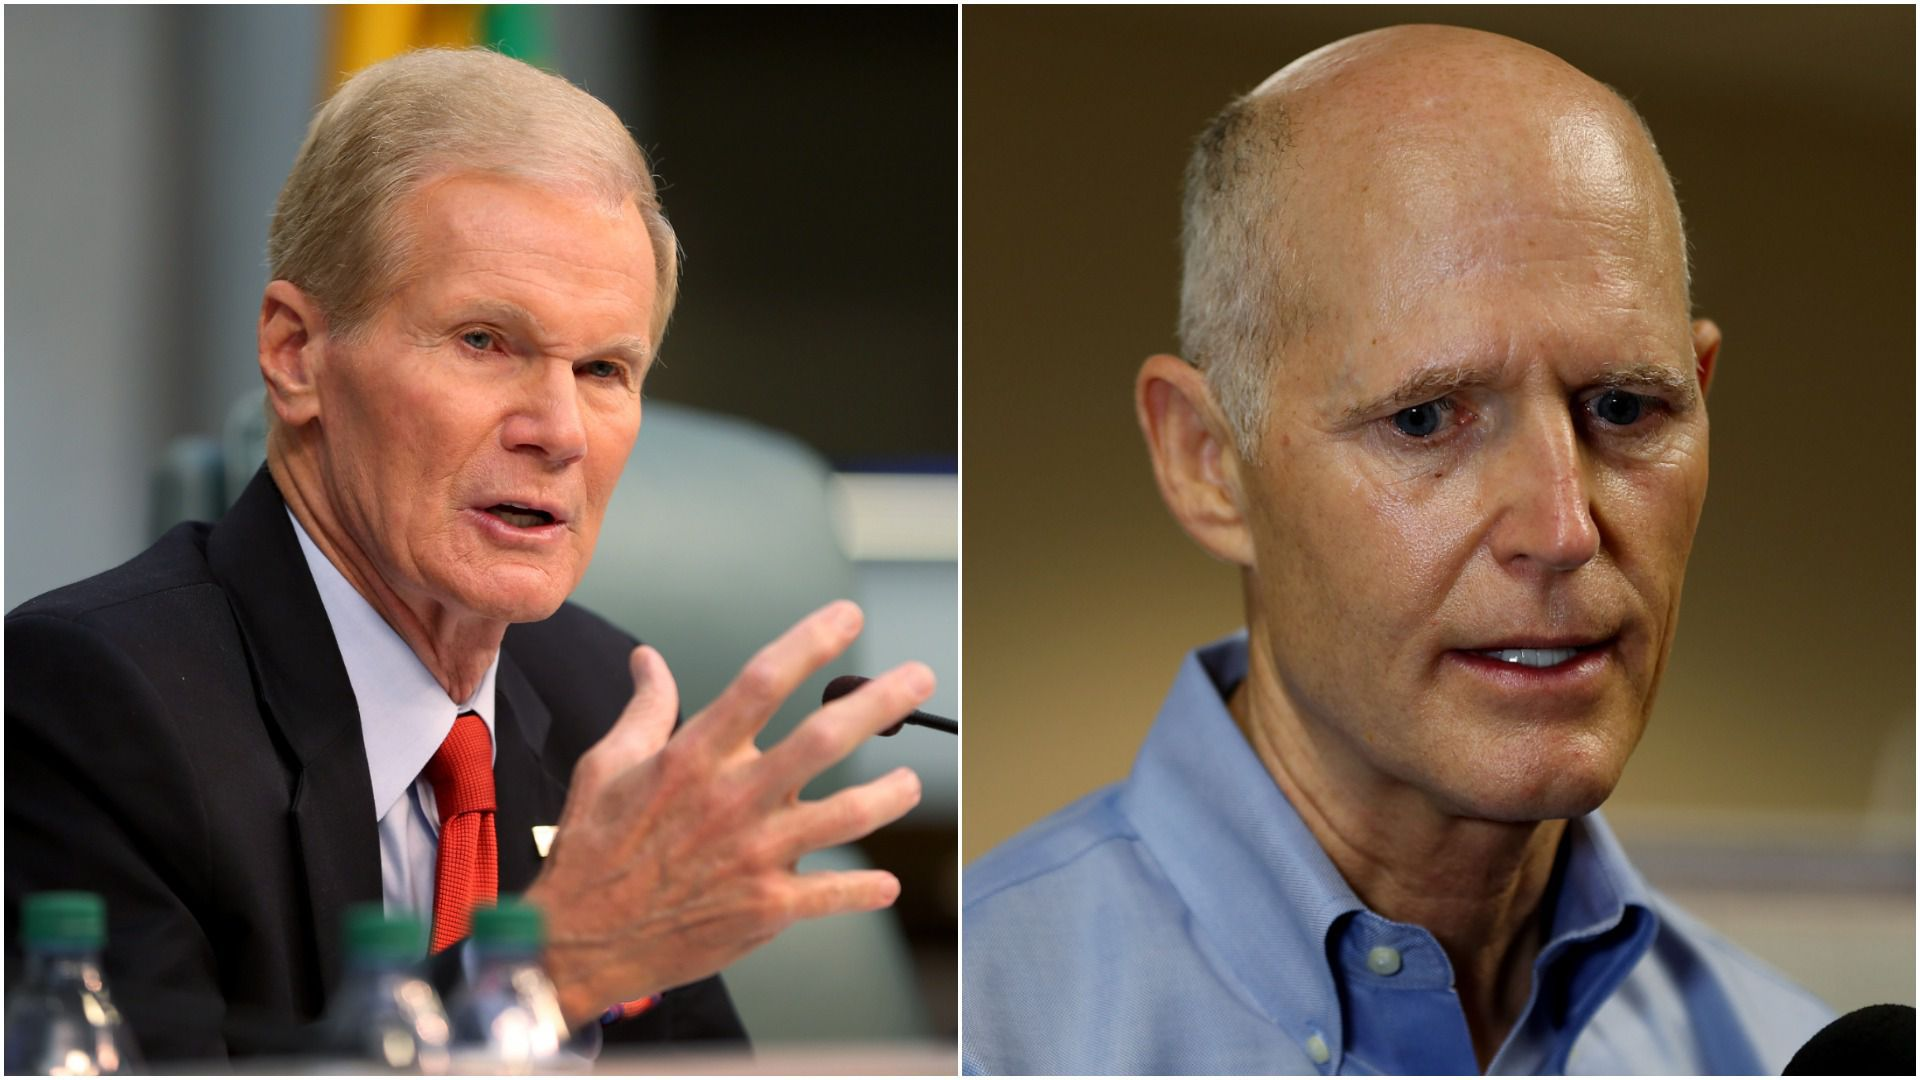 A split image of Bill Nelson and Rick Scott